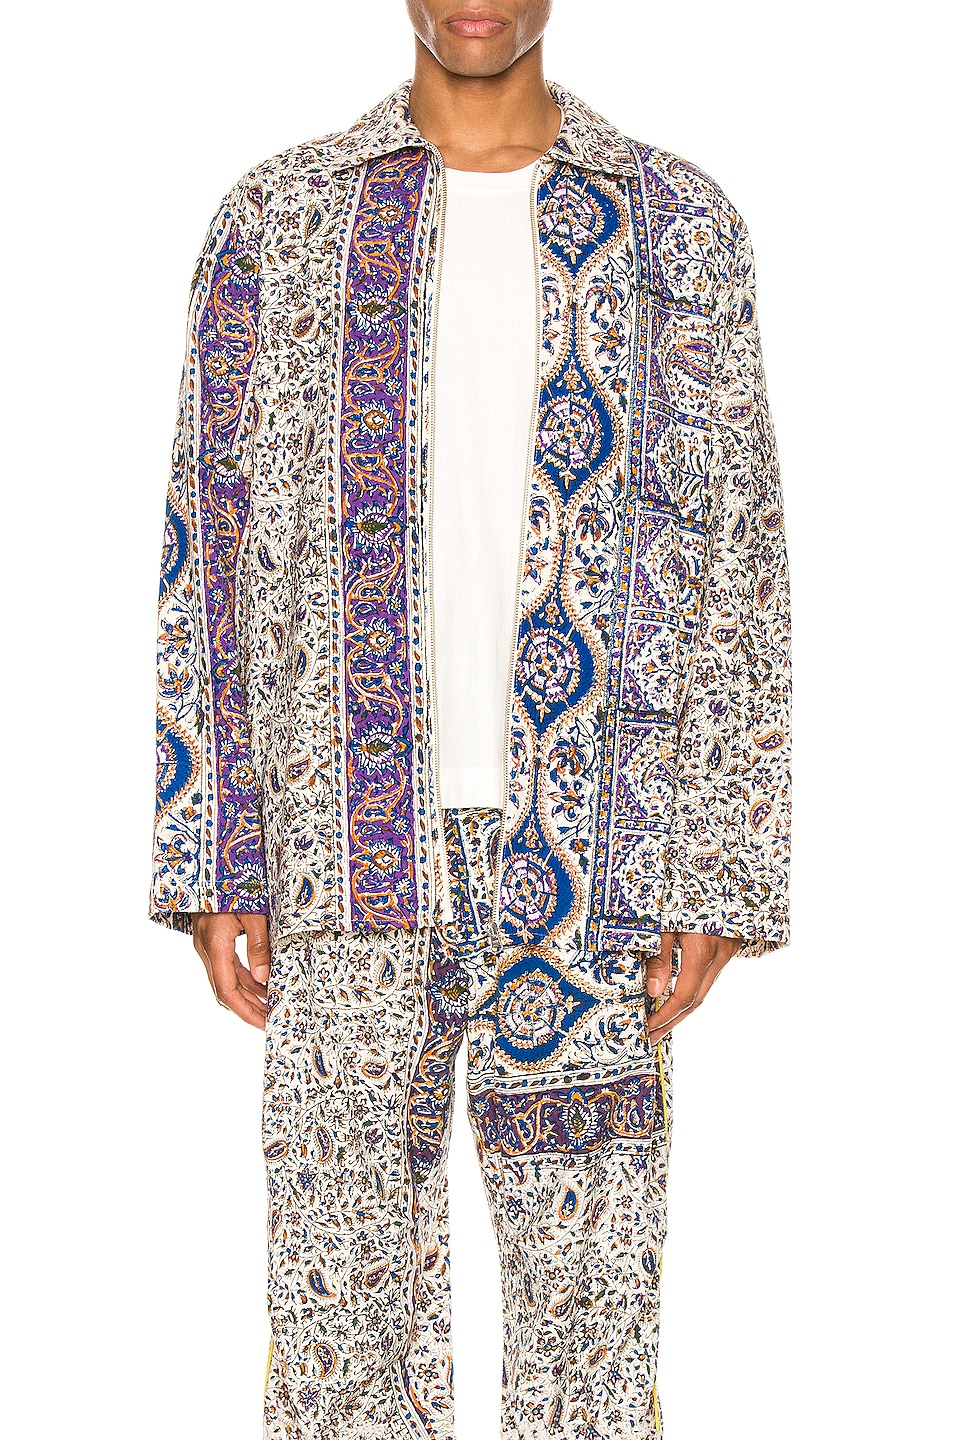 Image 1 of Paria Farzaneh Iranian Print Overshirt in Multi